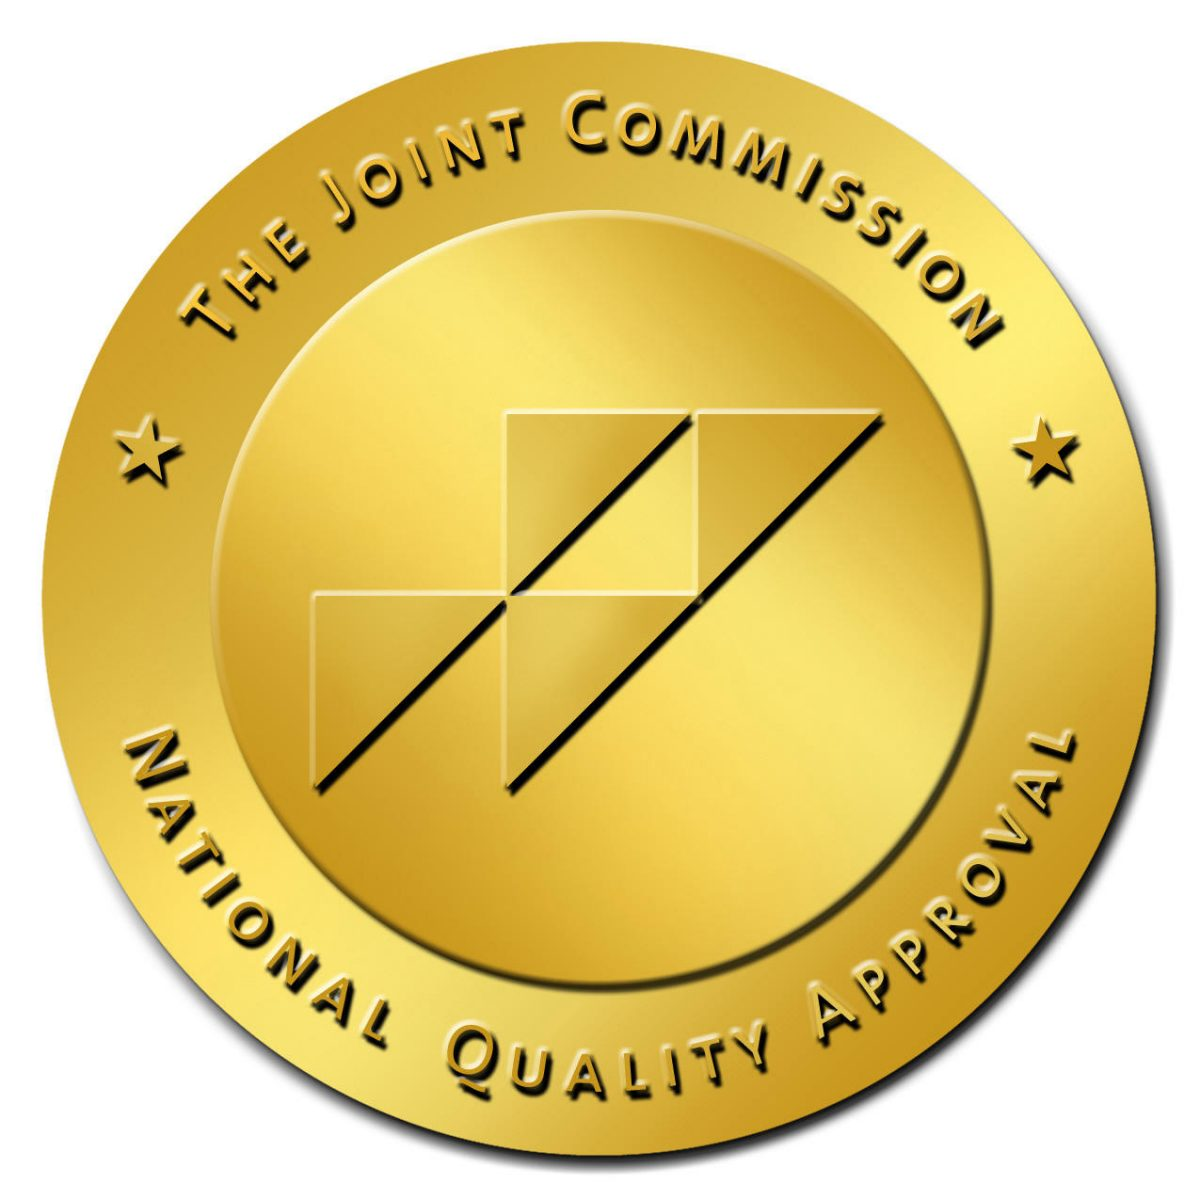 jointcommission-1200x1200.jpg